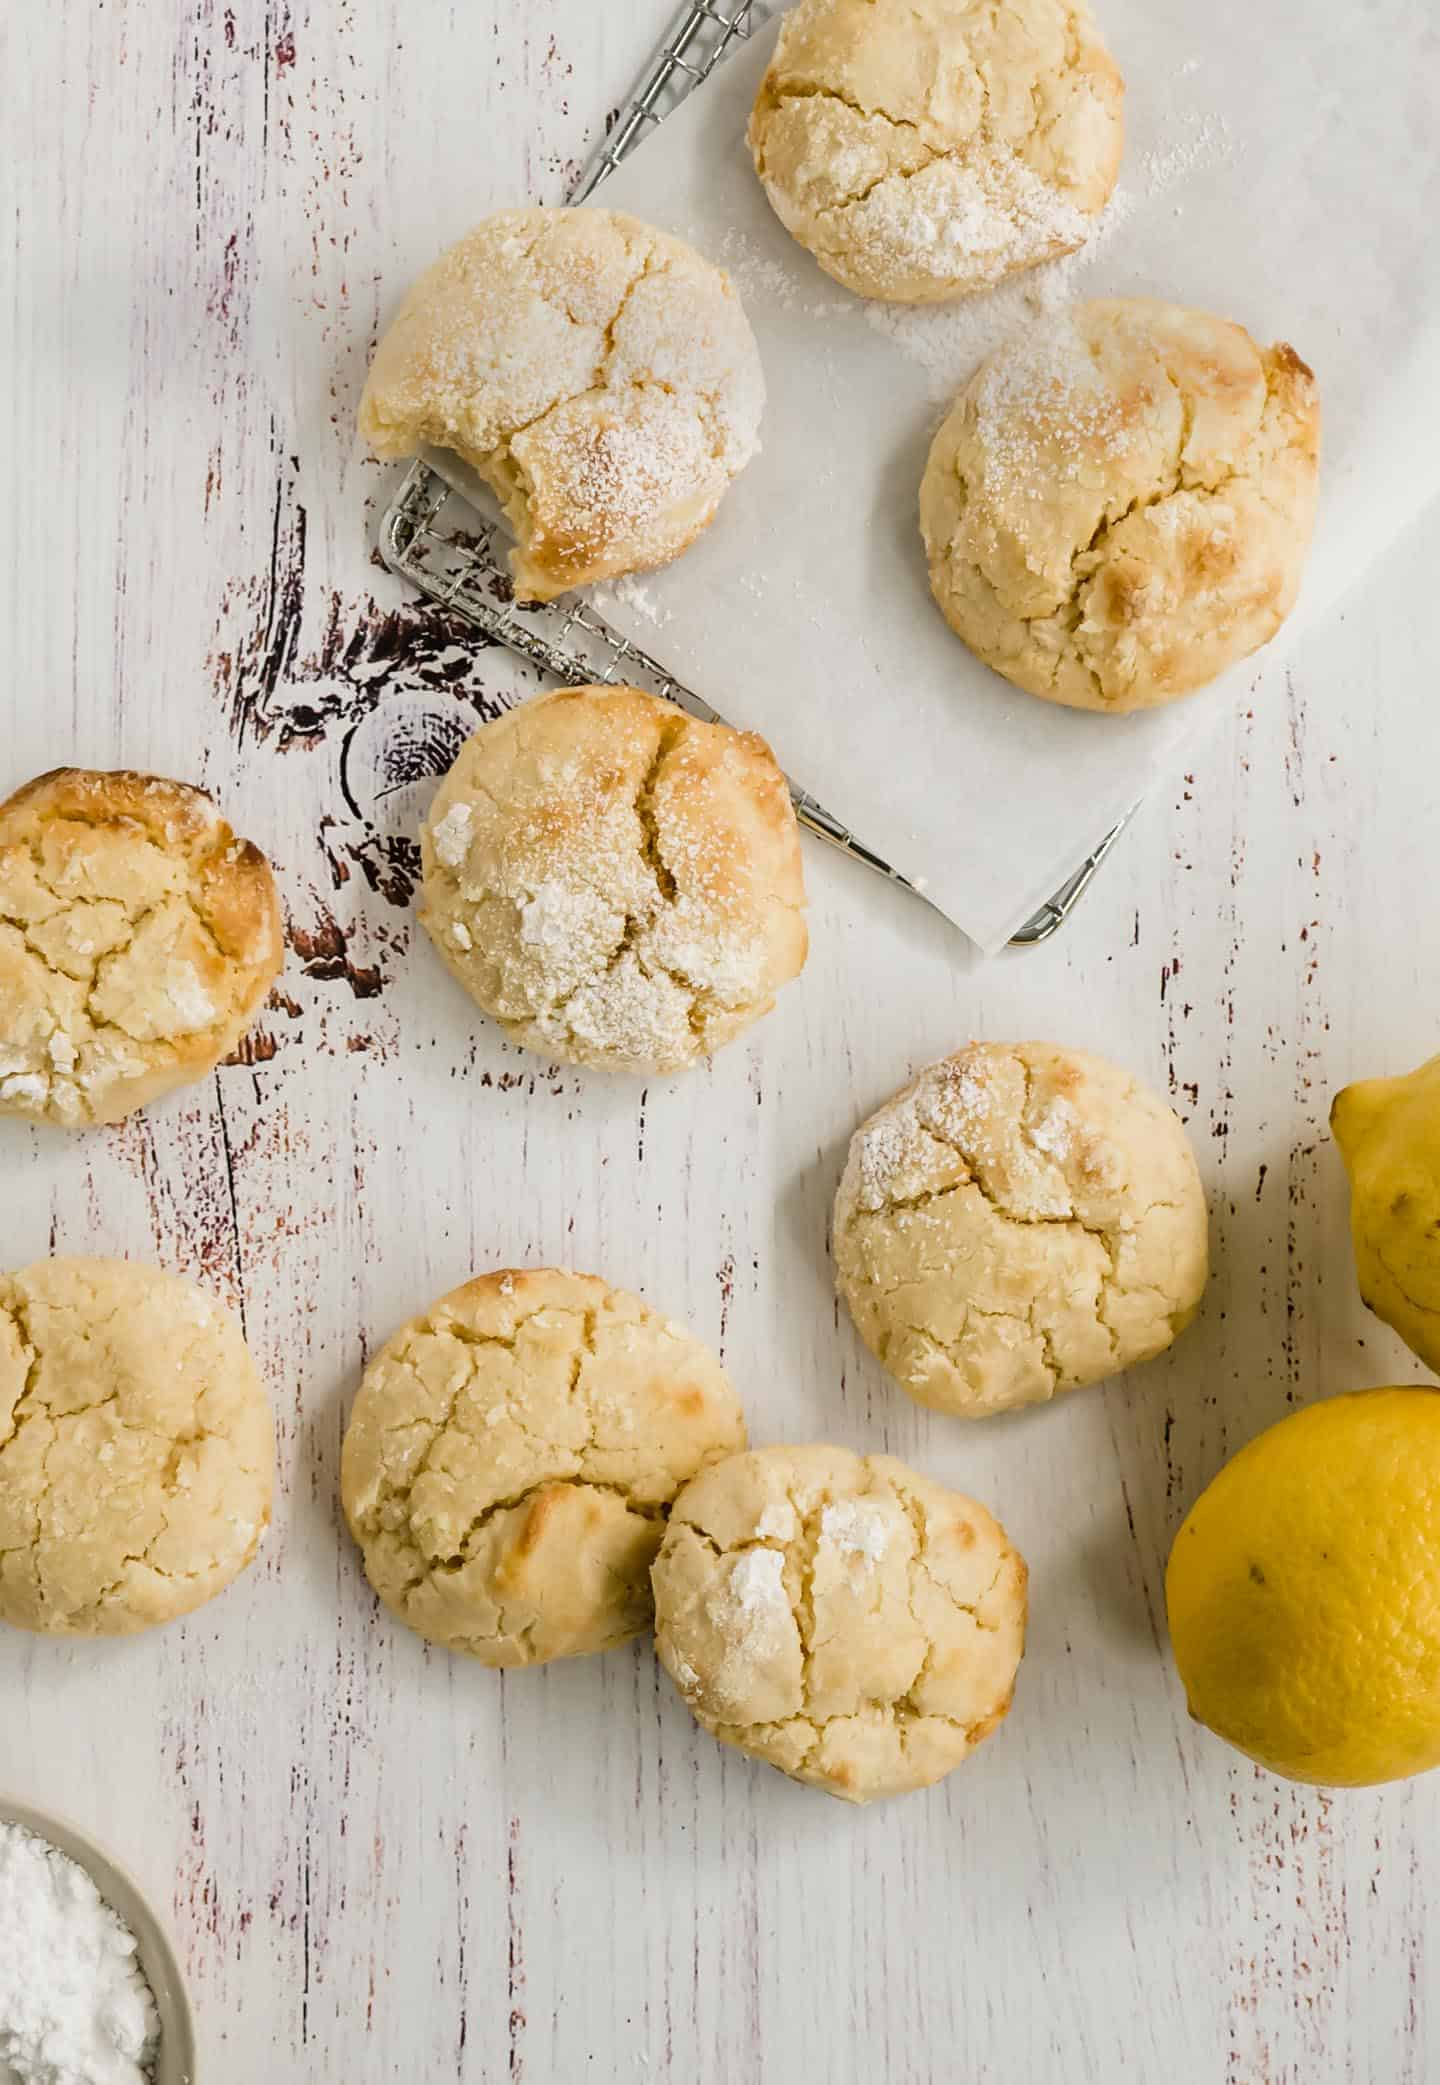 If you are into lemon, you'll love these made-from-scratch Lemon Crinkle Cookies. Chewy center and slightly crispy edges that melt in your mouth.